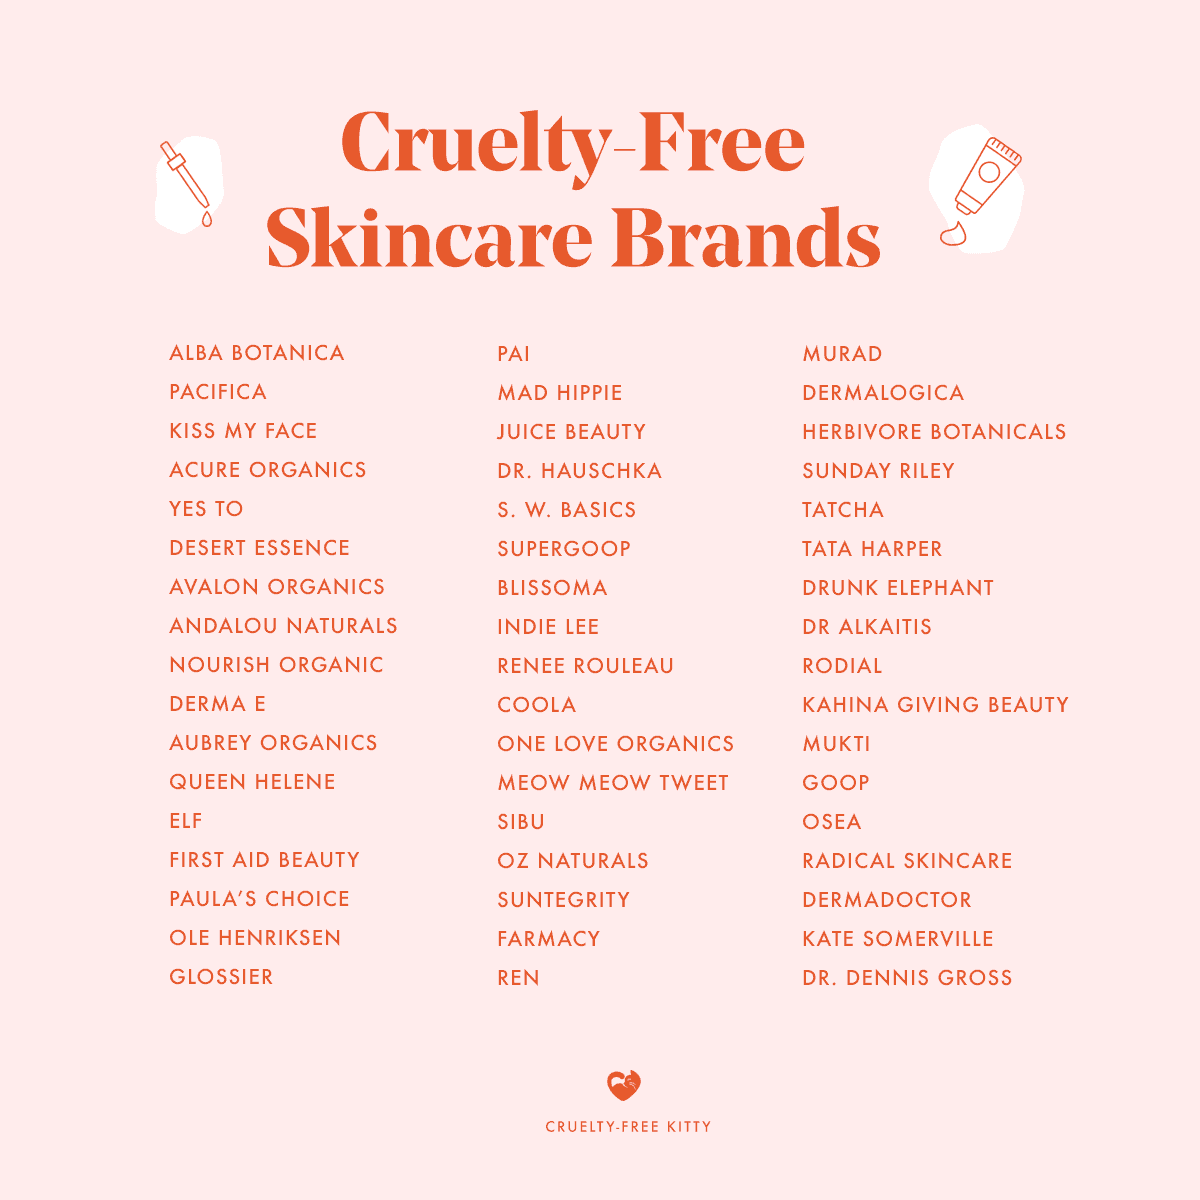 51 Cruelty Free Skincare Brands For